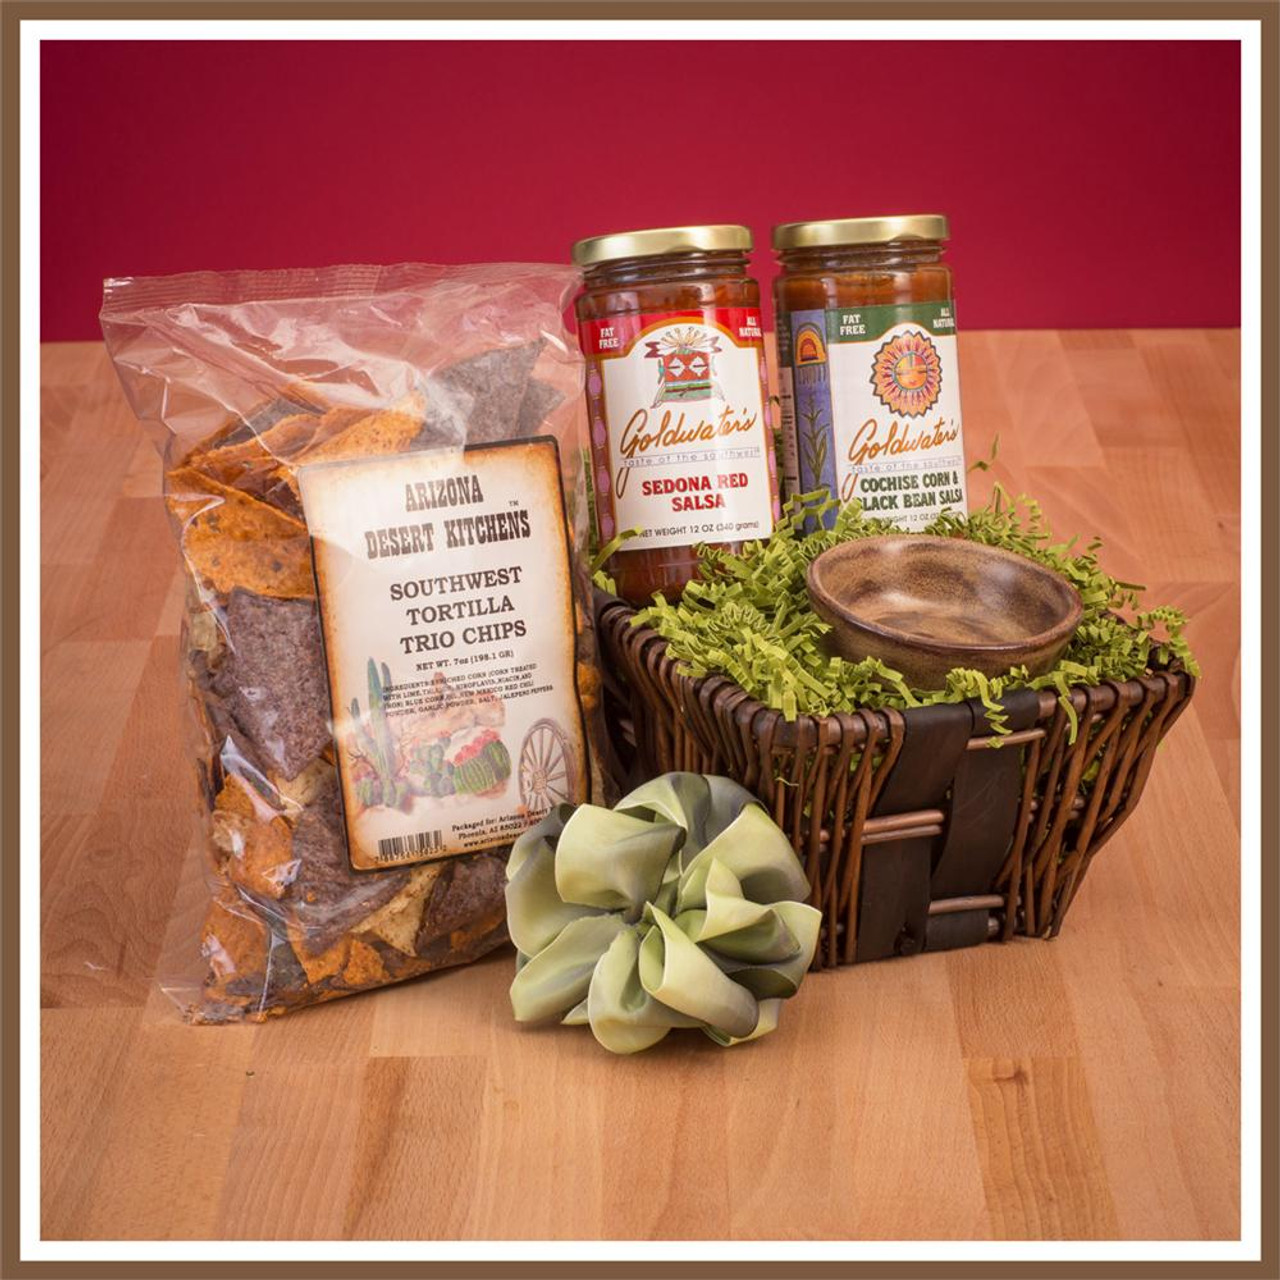 goldwaters chips and salsa gift basket